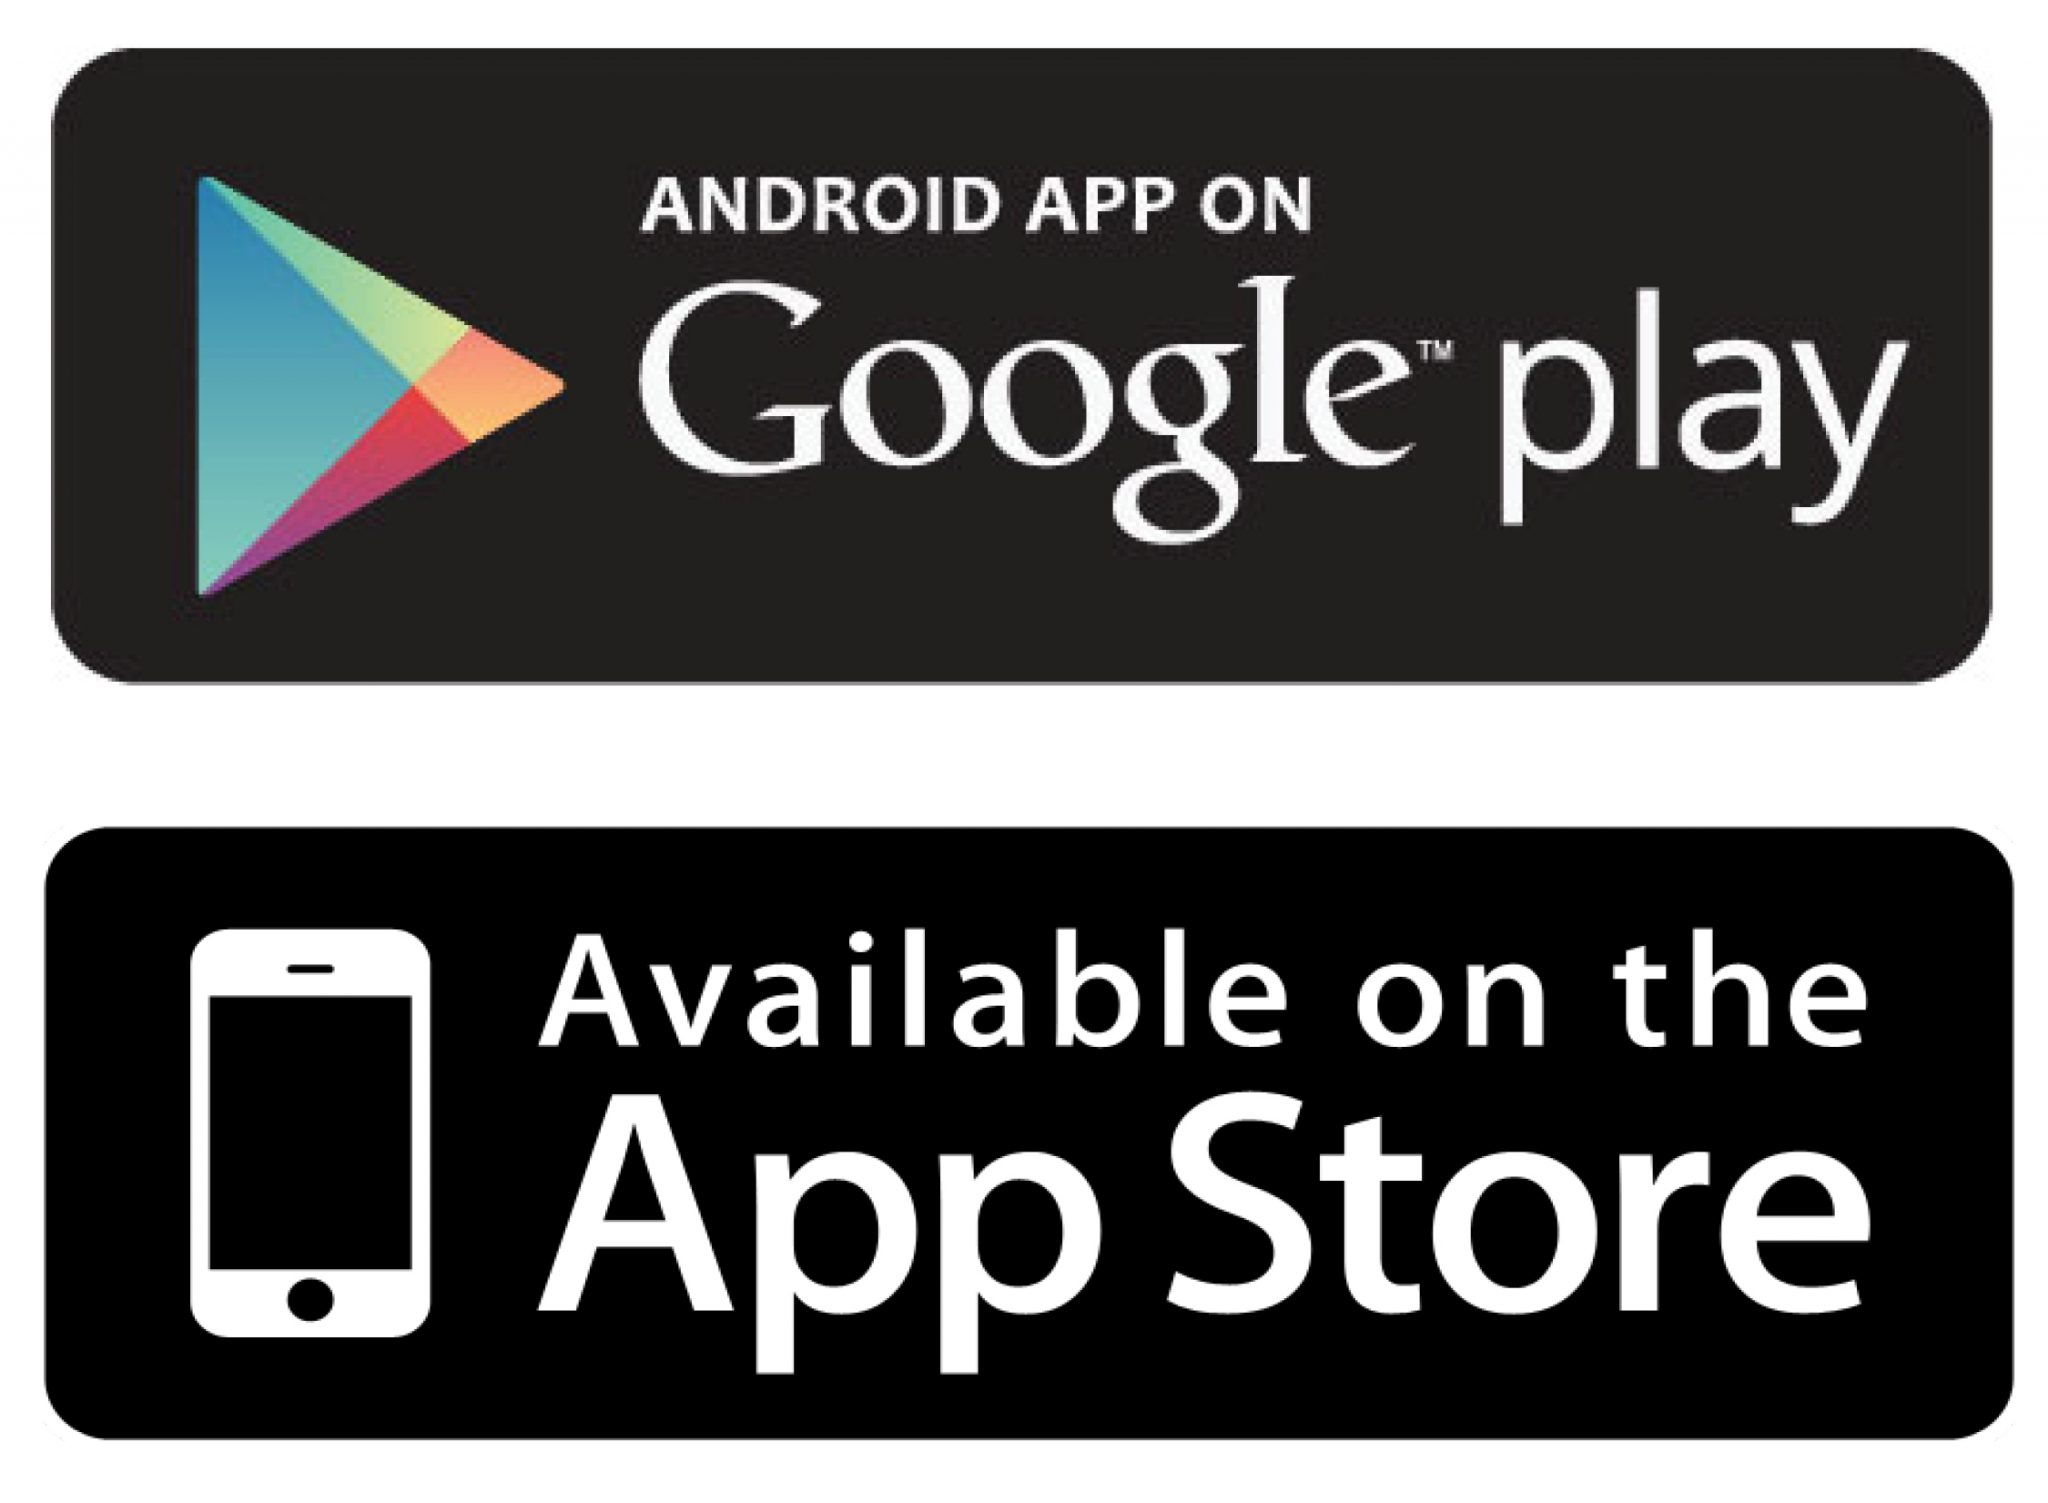 Best mobile app store google play store apple app store Play store app